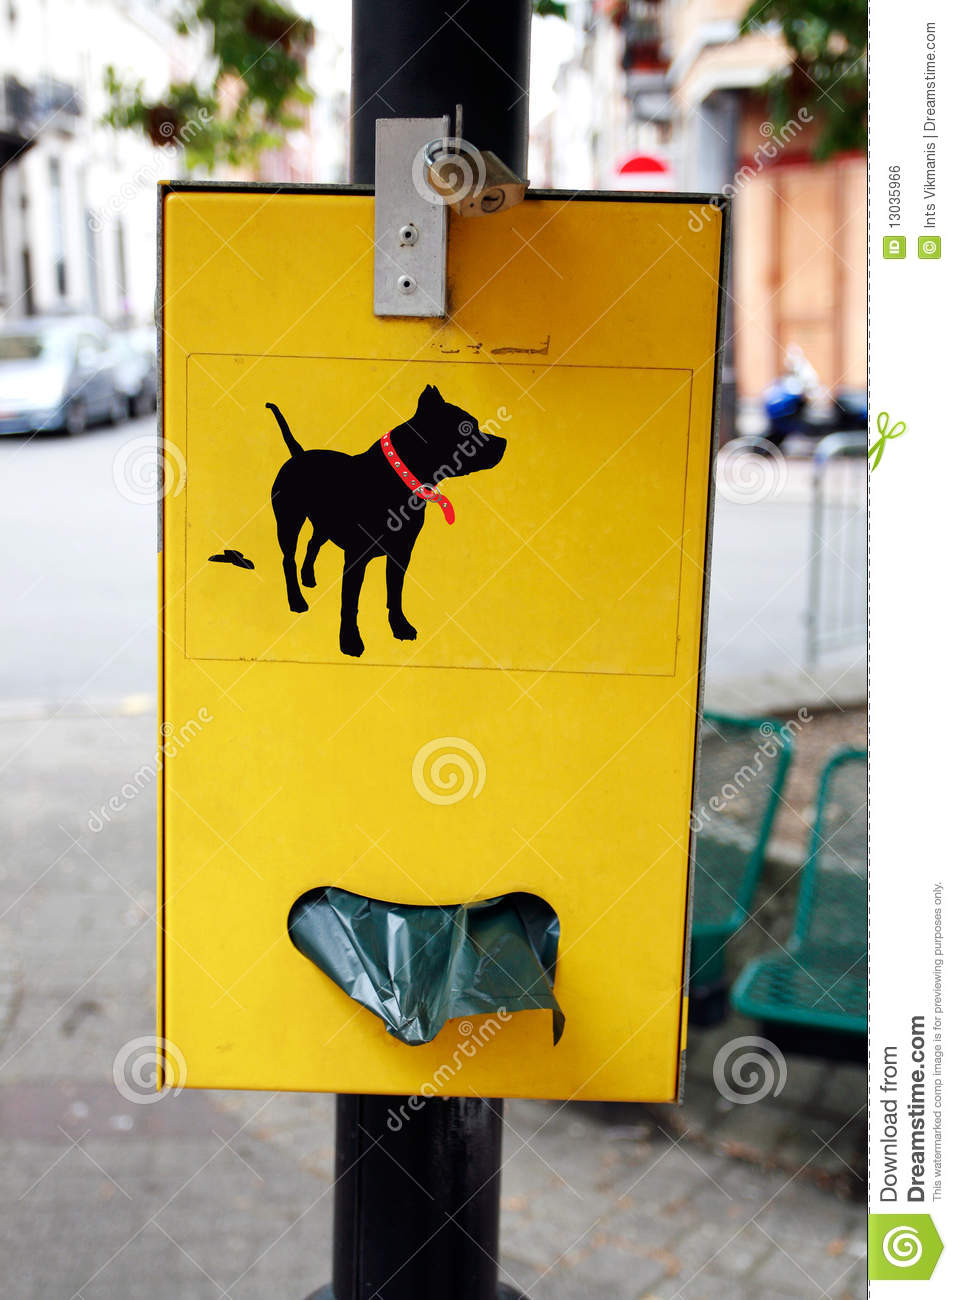 dog poop bag dispenser for parks